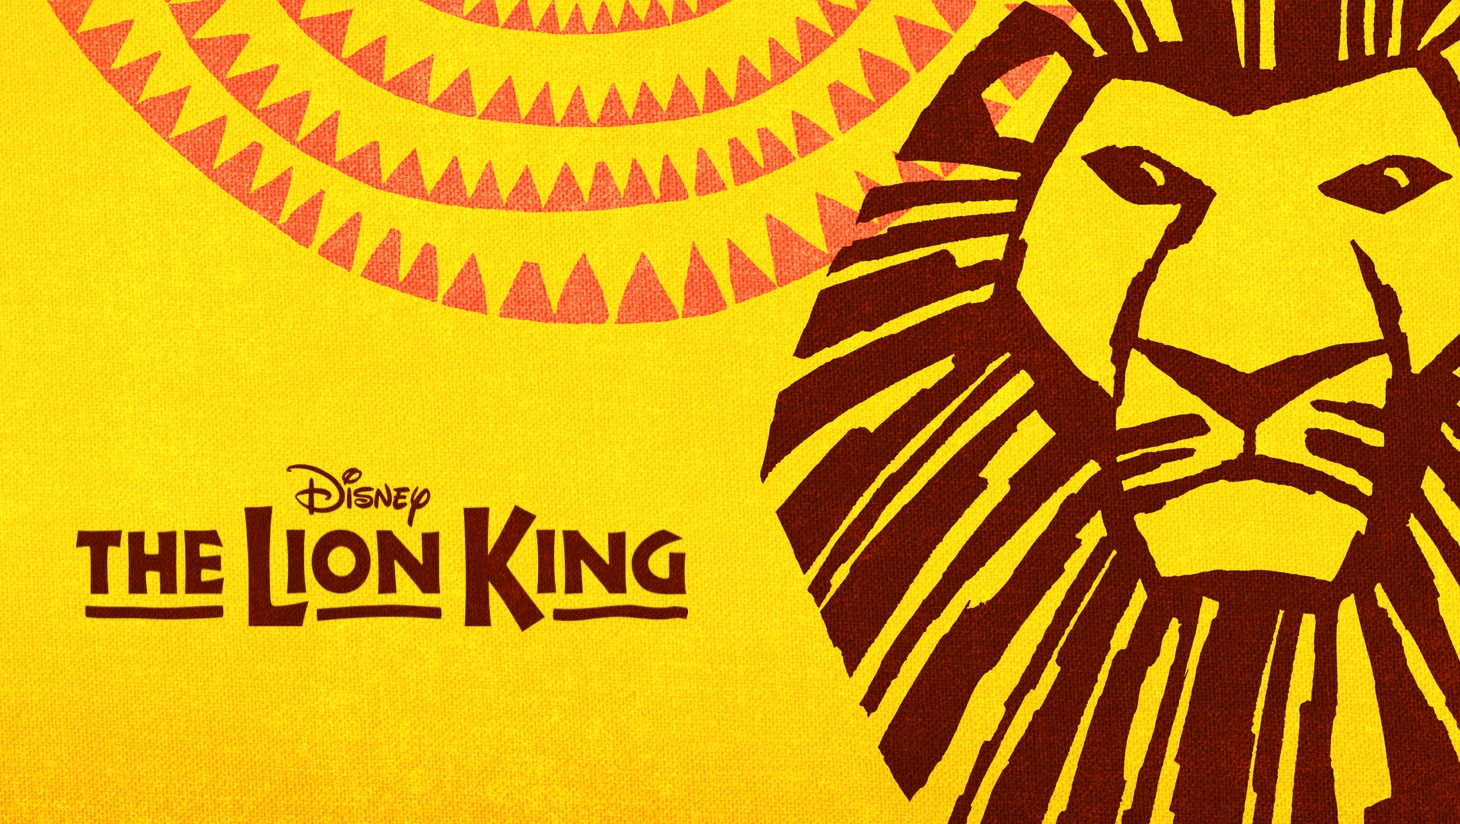 The Lion King artwork with a lion head on a decorative yellow background